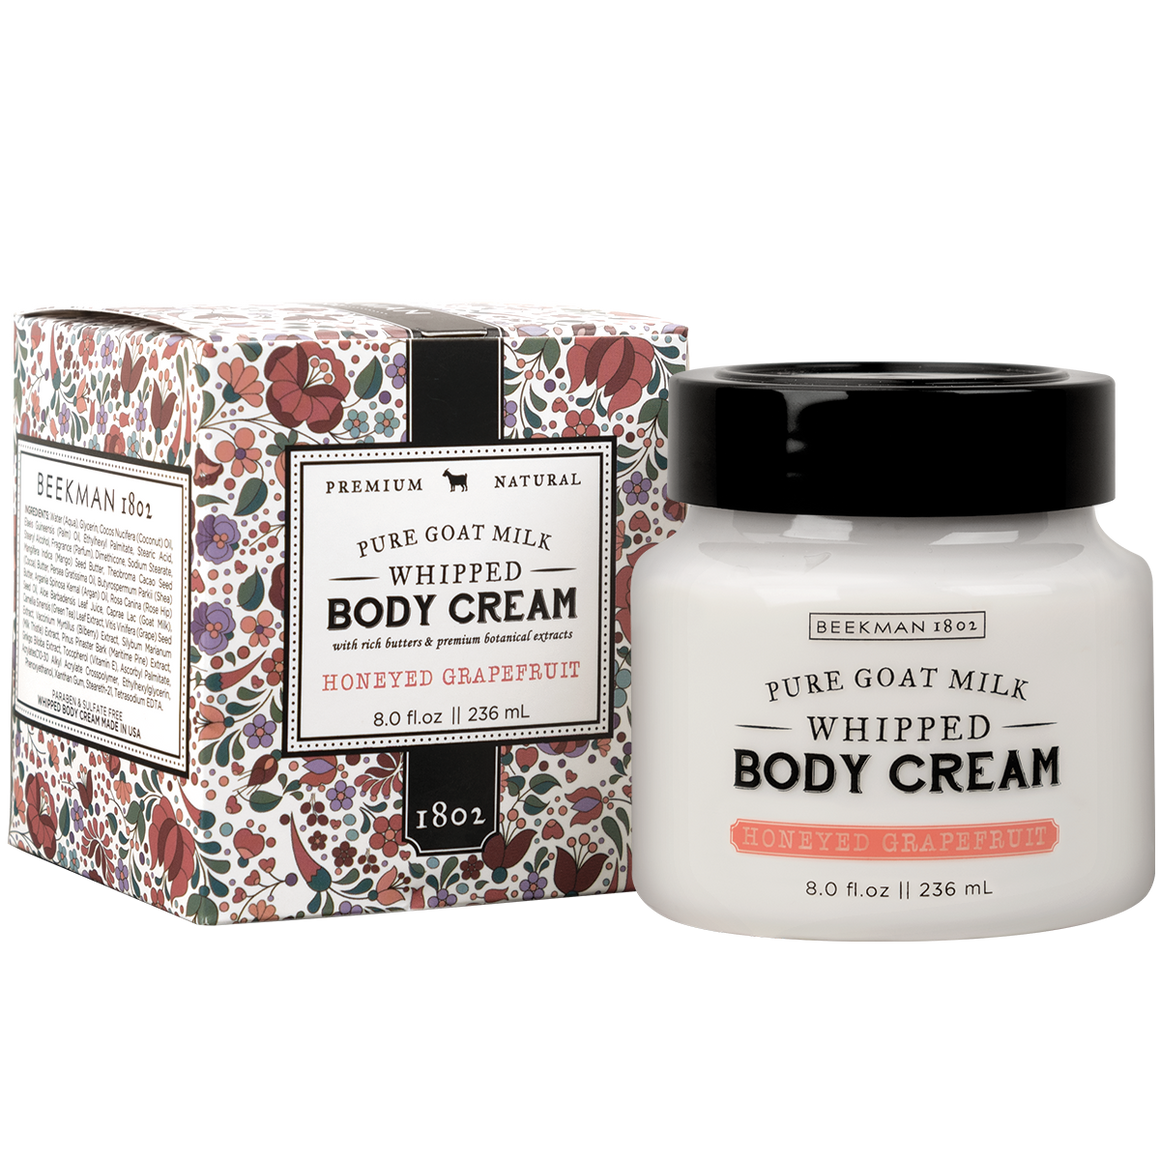 Honeyed Grapefruit Whipped Body Cream 8.0oz